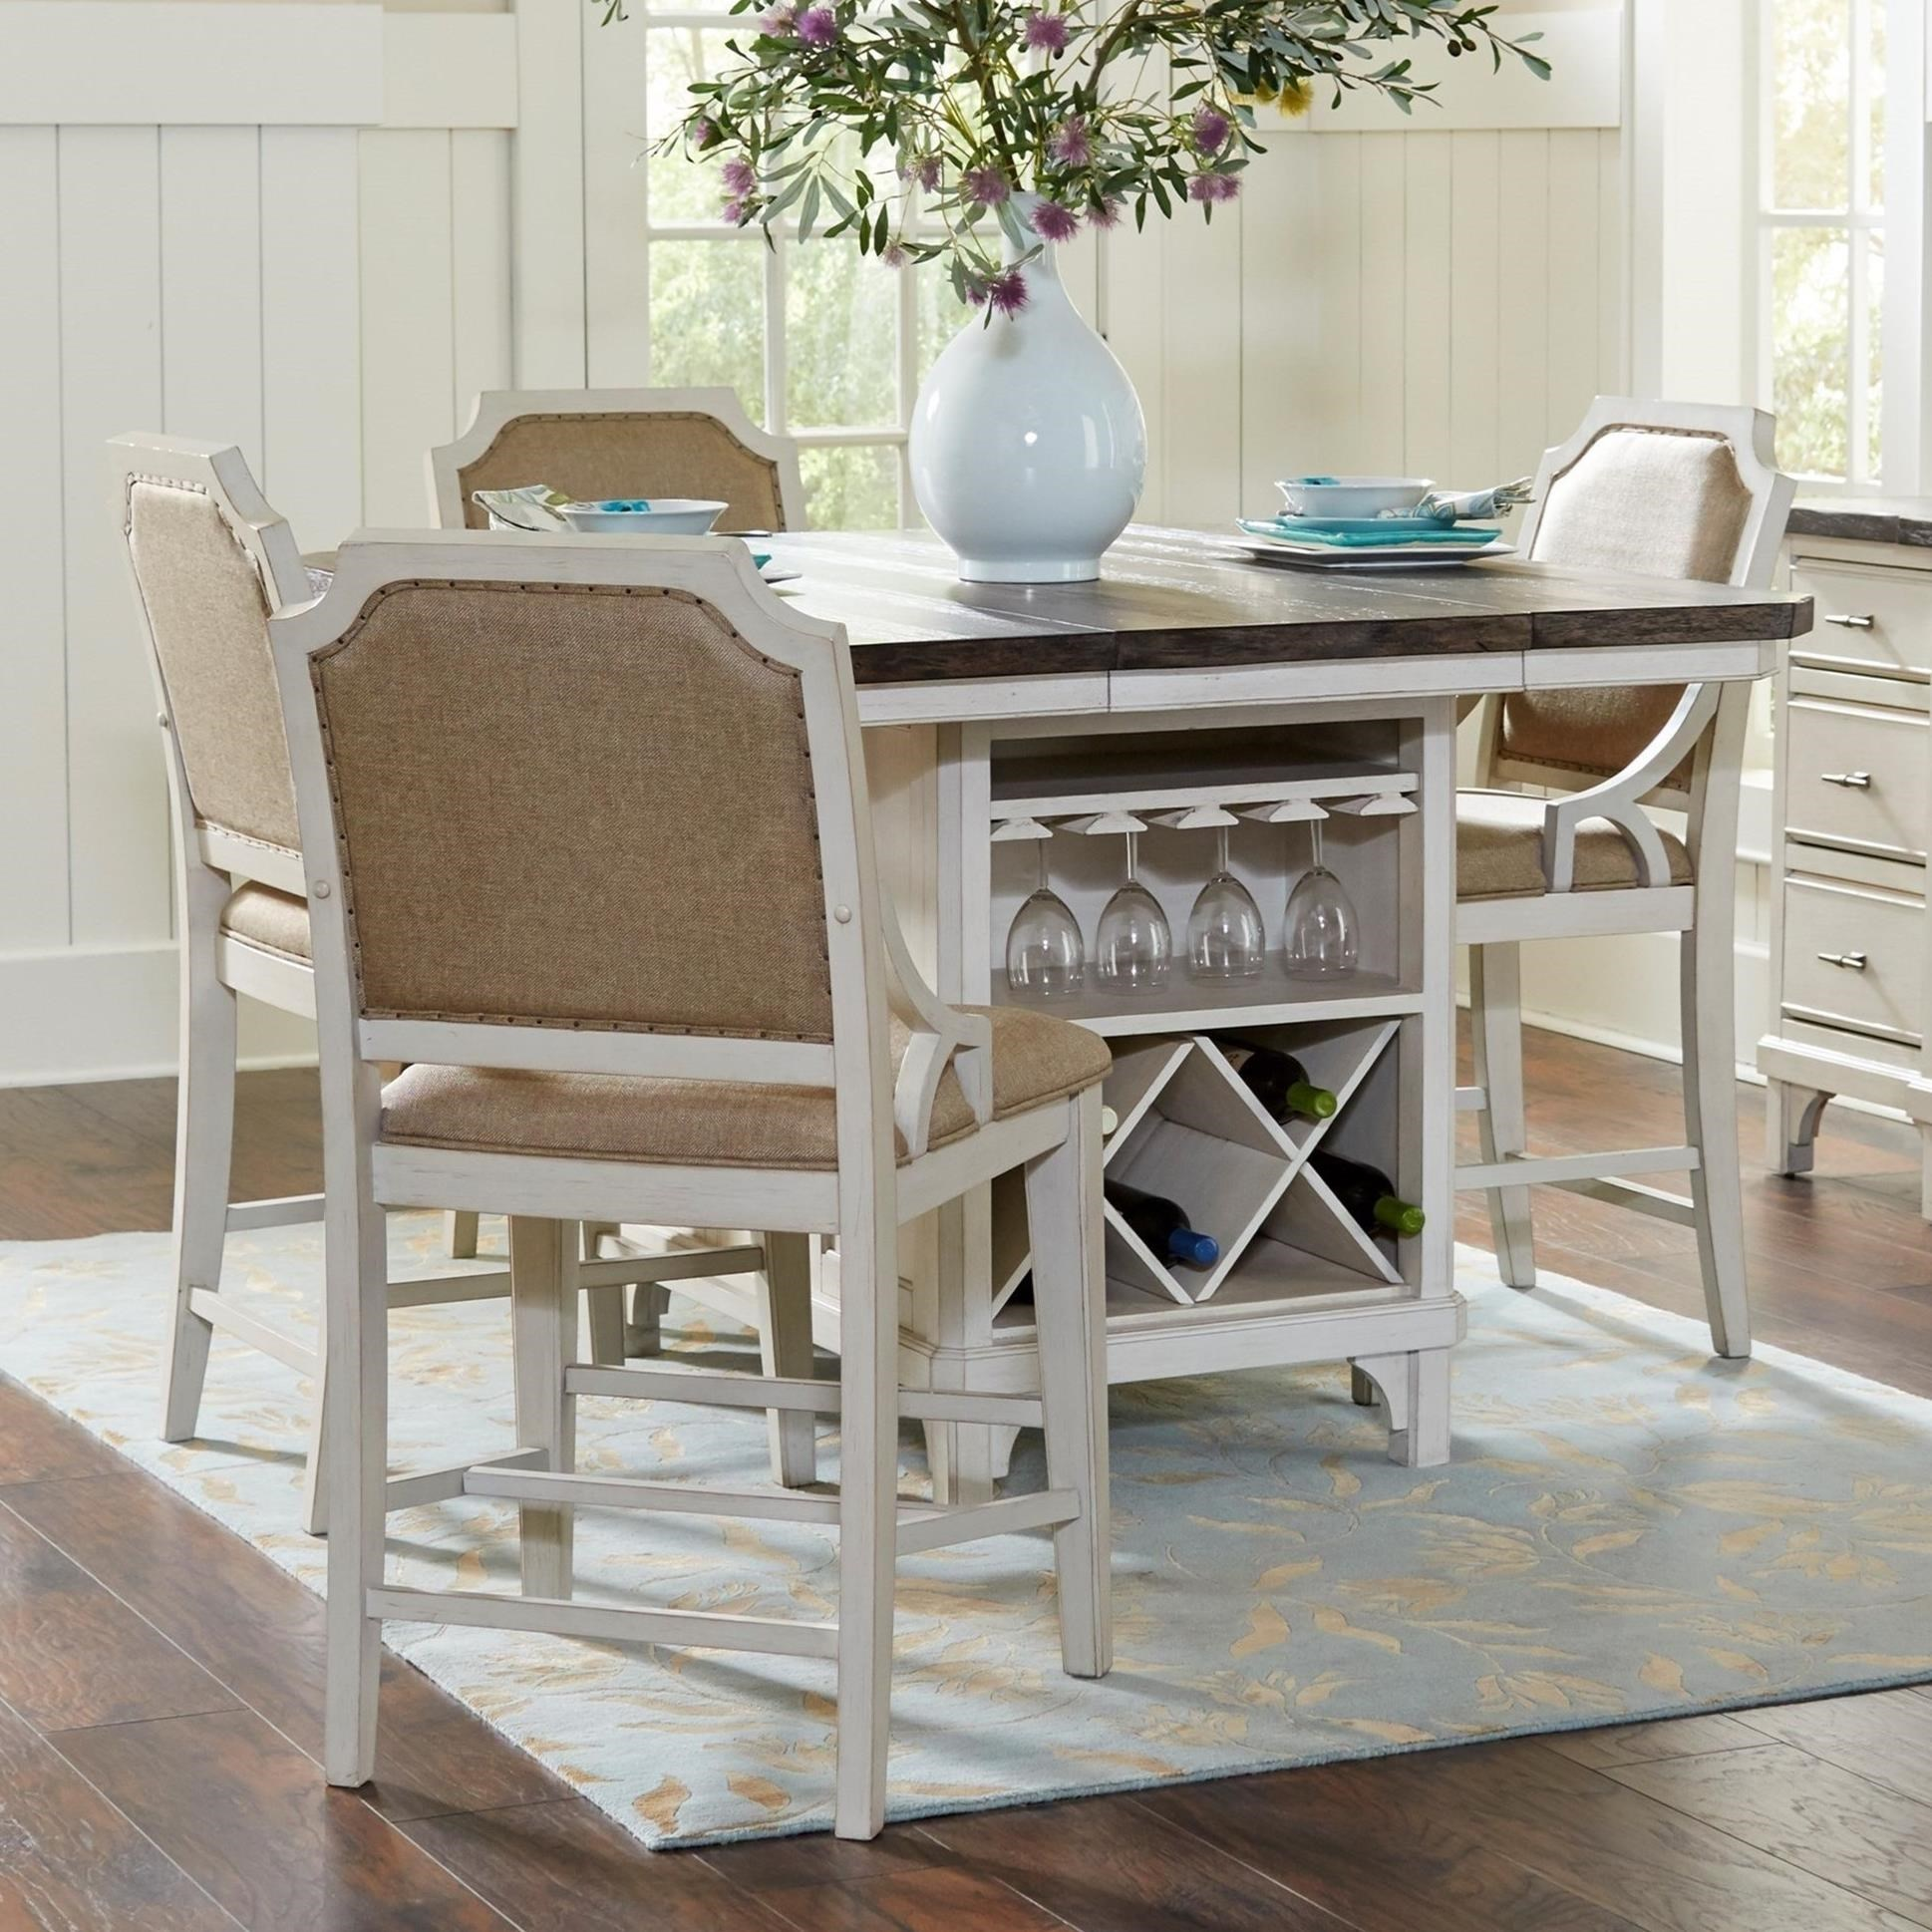 avalon furniture mystic cay 5 kitchen island table set pilgrim furniture city pub